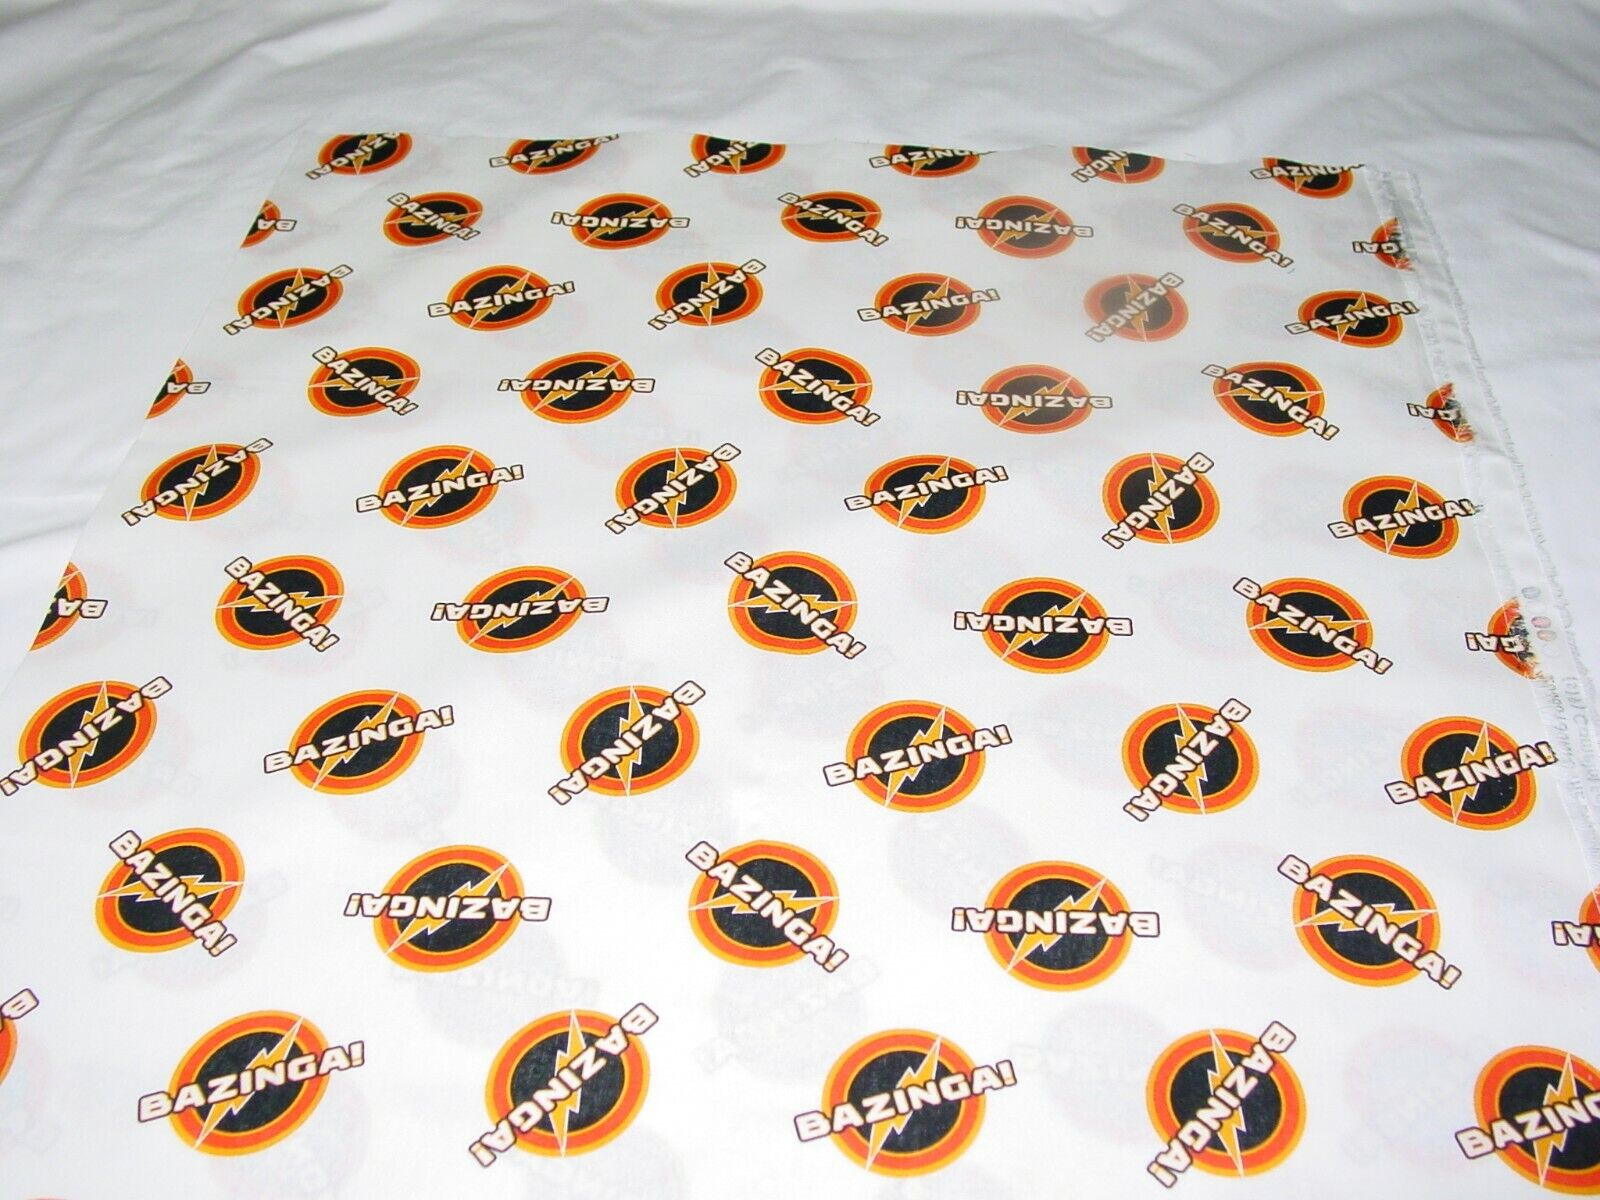 THE BIG BANG THEORY BAZINGA IN WHITE FABRIC REMNANT LENGHT 33 X WIDTH 42  - $9.50